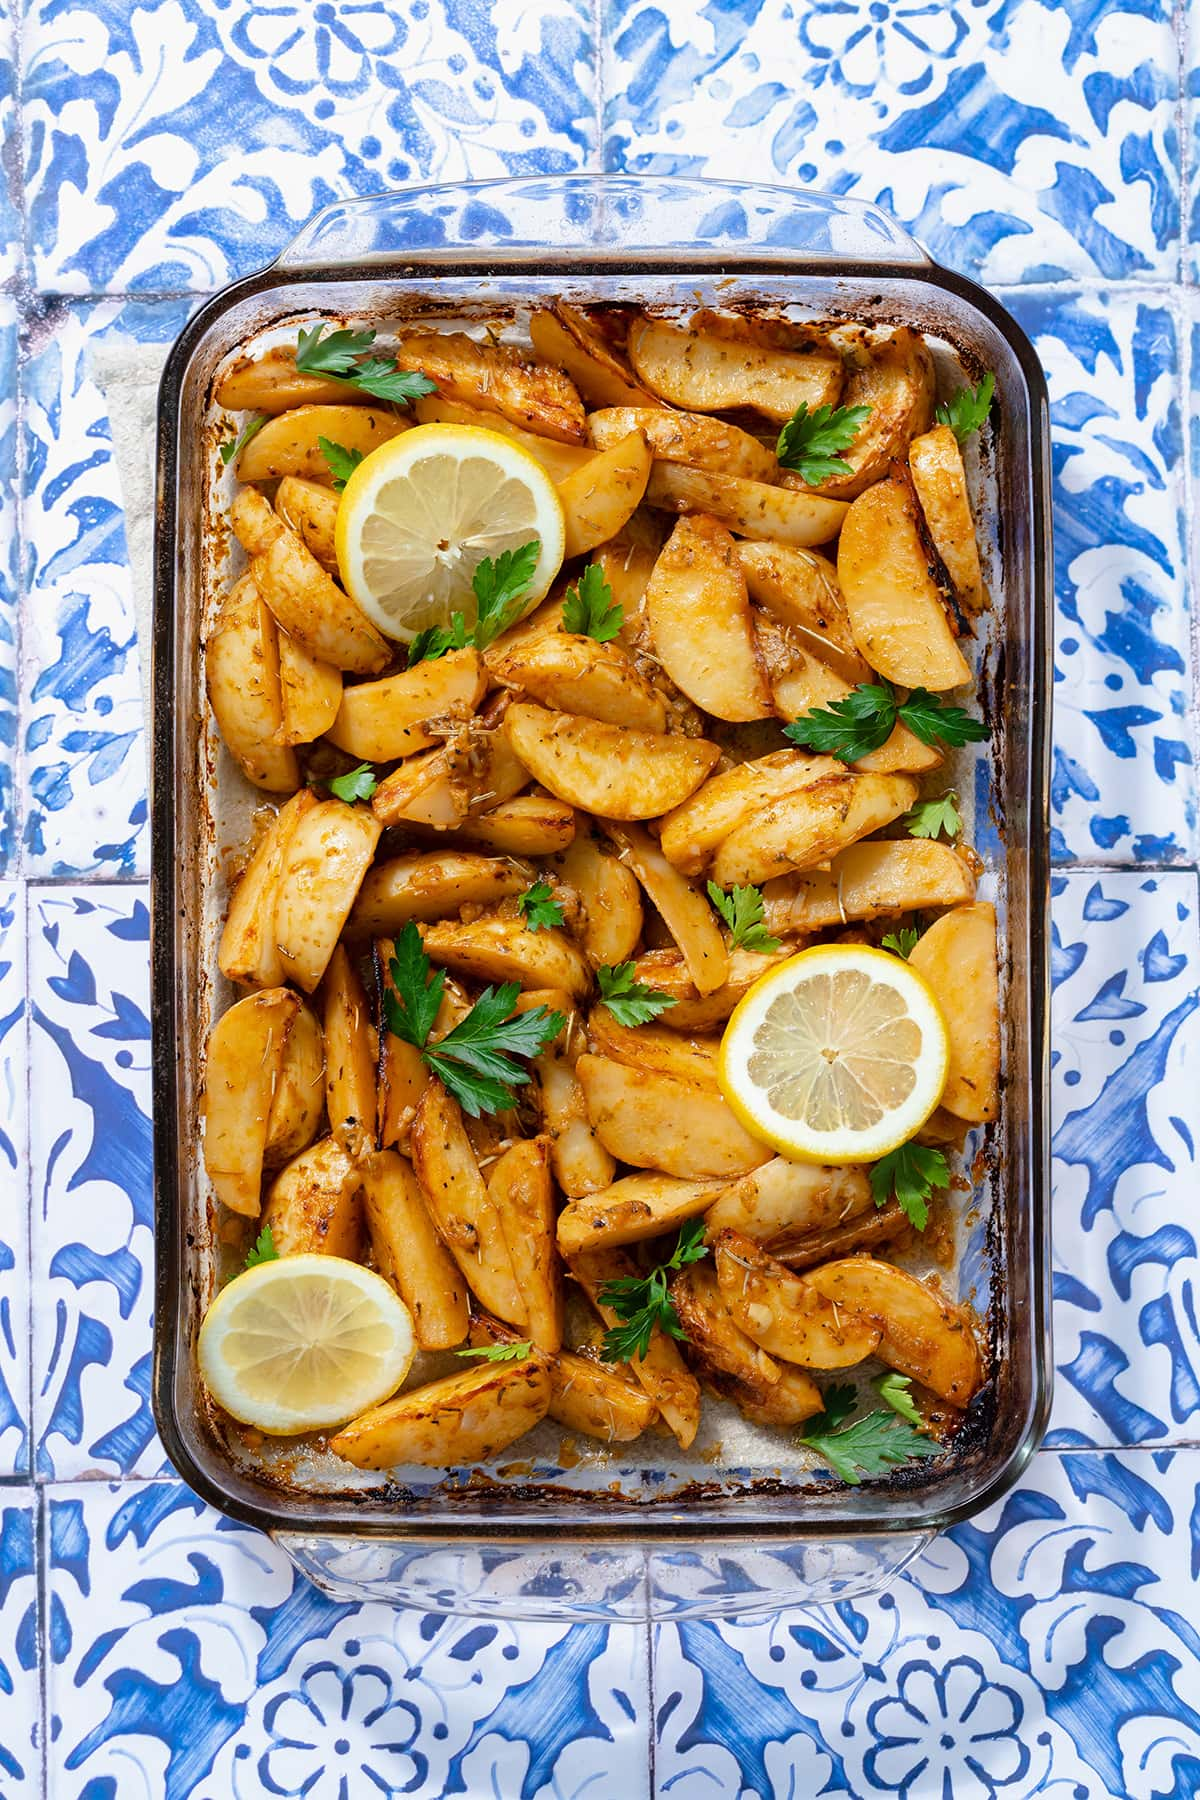 A photo of Mediterranean Potatoes garnished with three slice of lemon and chopped parsley. Blue tile background.